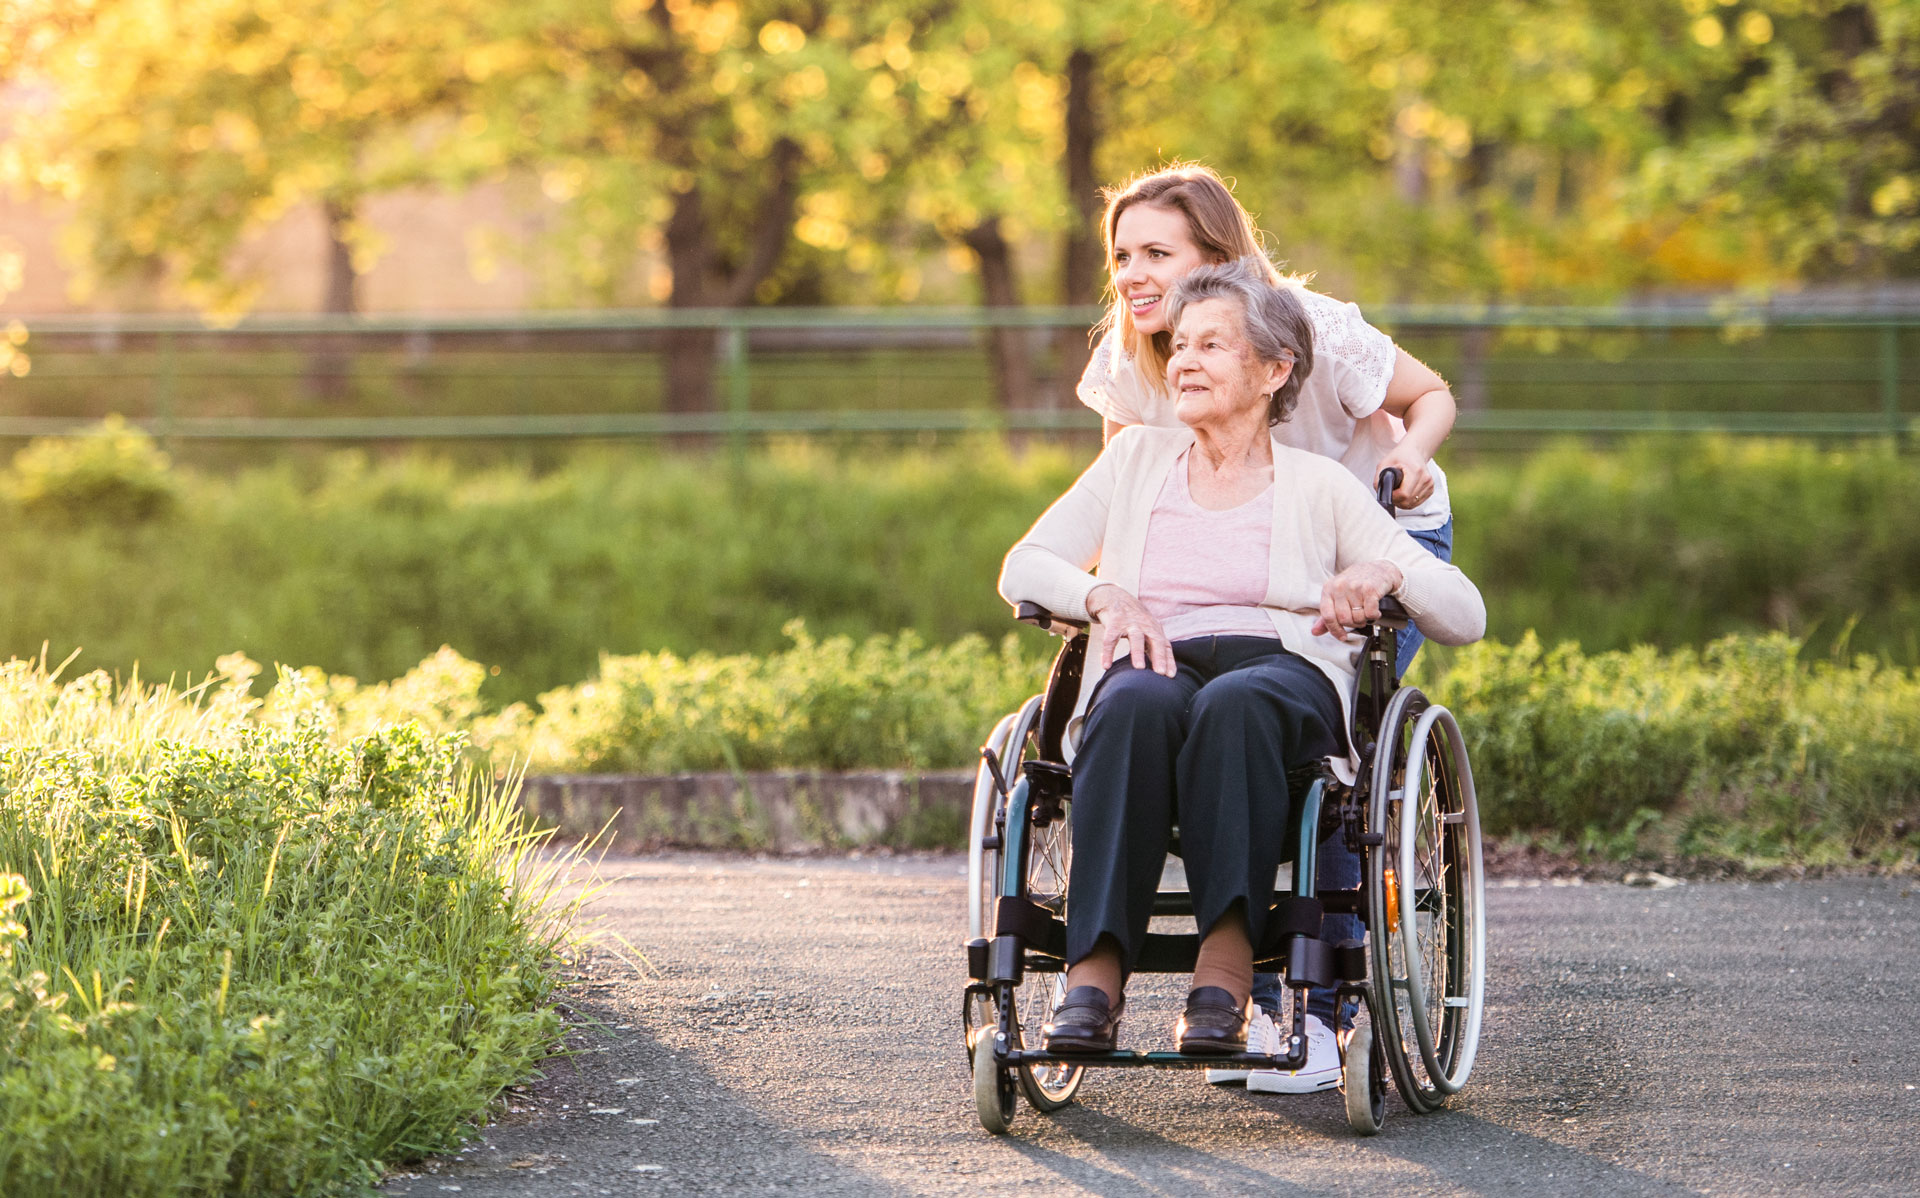 senior woman being pushed outdoors in her wheelchair by a woman, enjoying the scenery